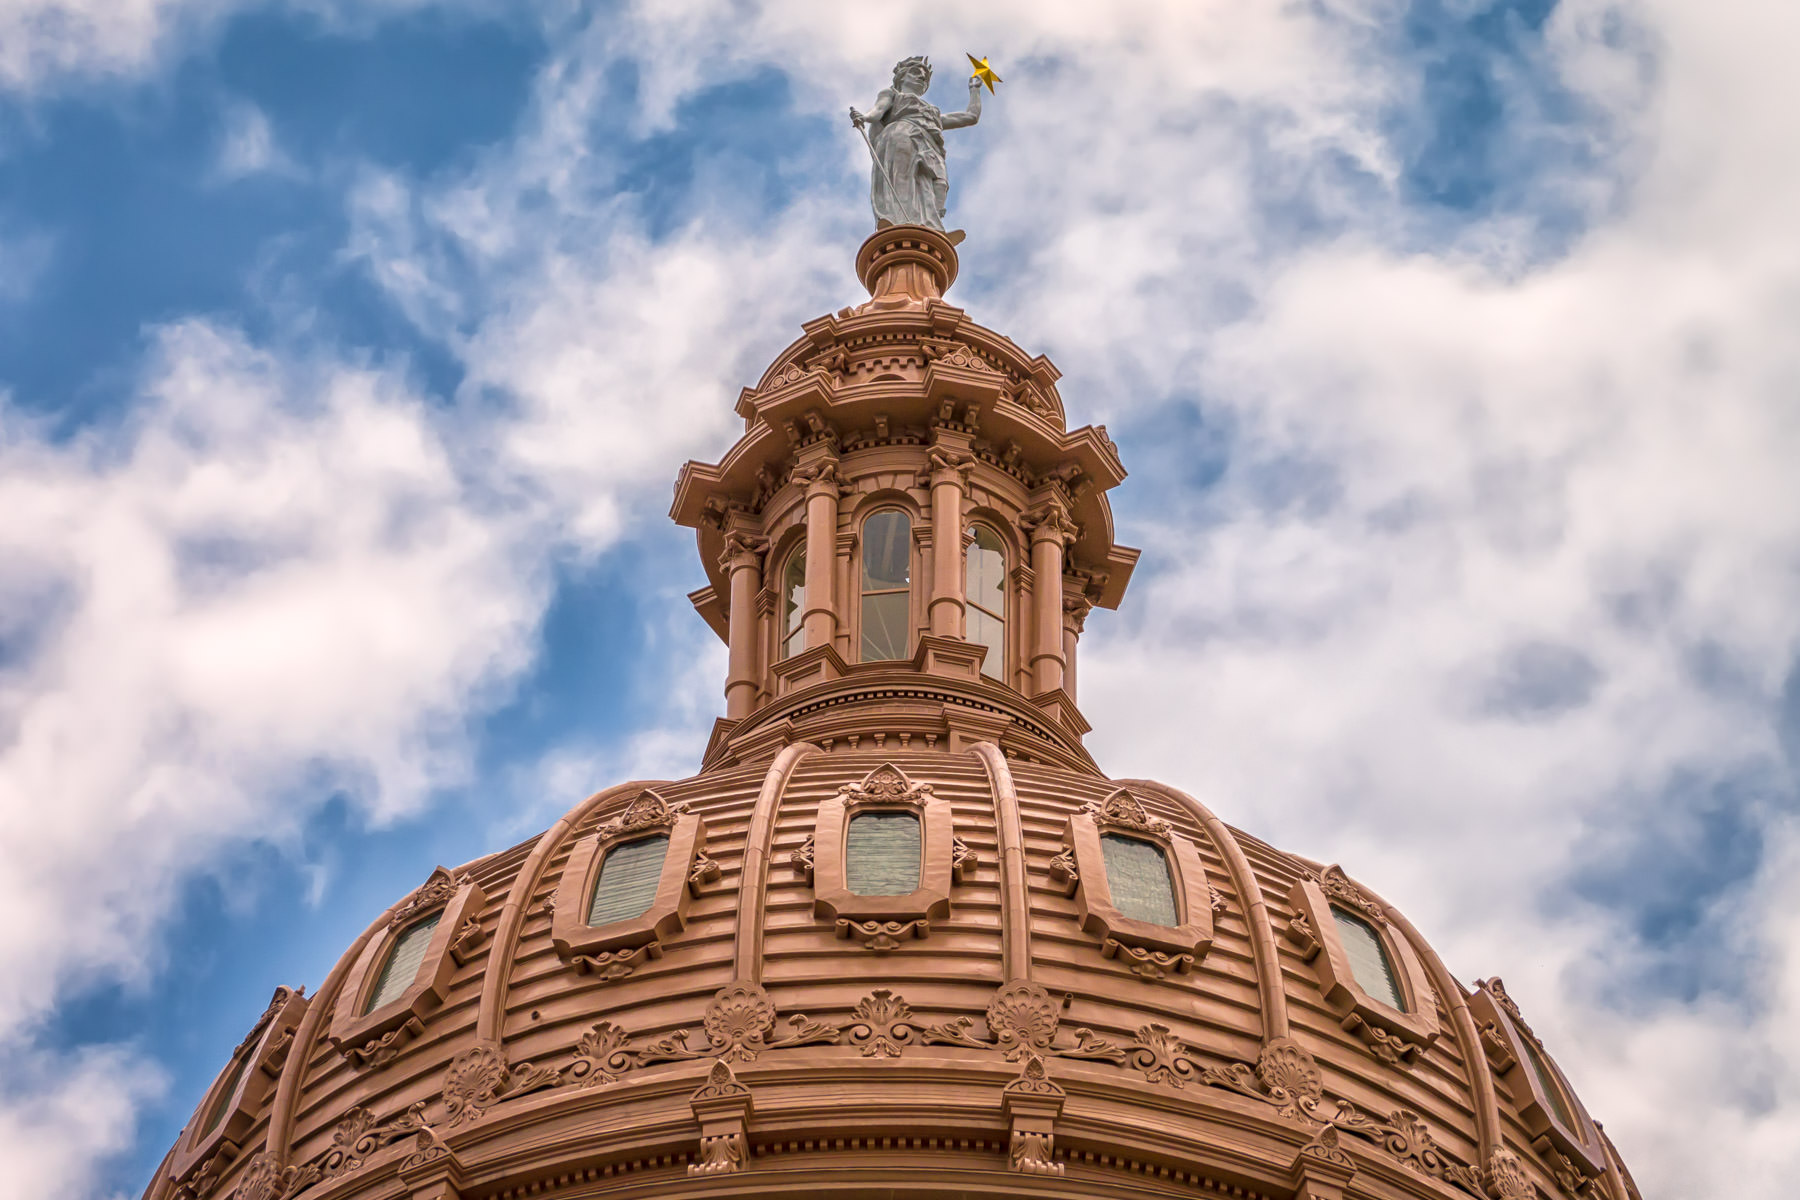 The Goddess of Liberty statue atop the 308-foot-tall dome of the Texas State Capitol, Austin.